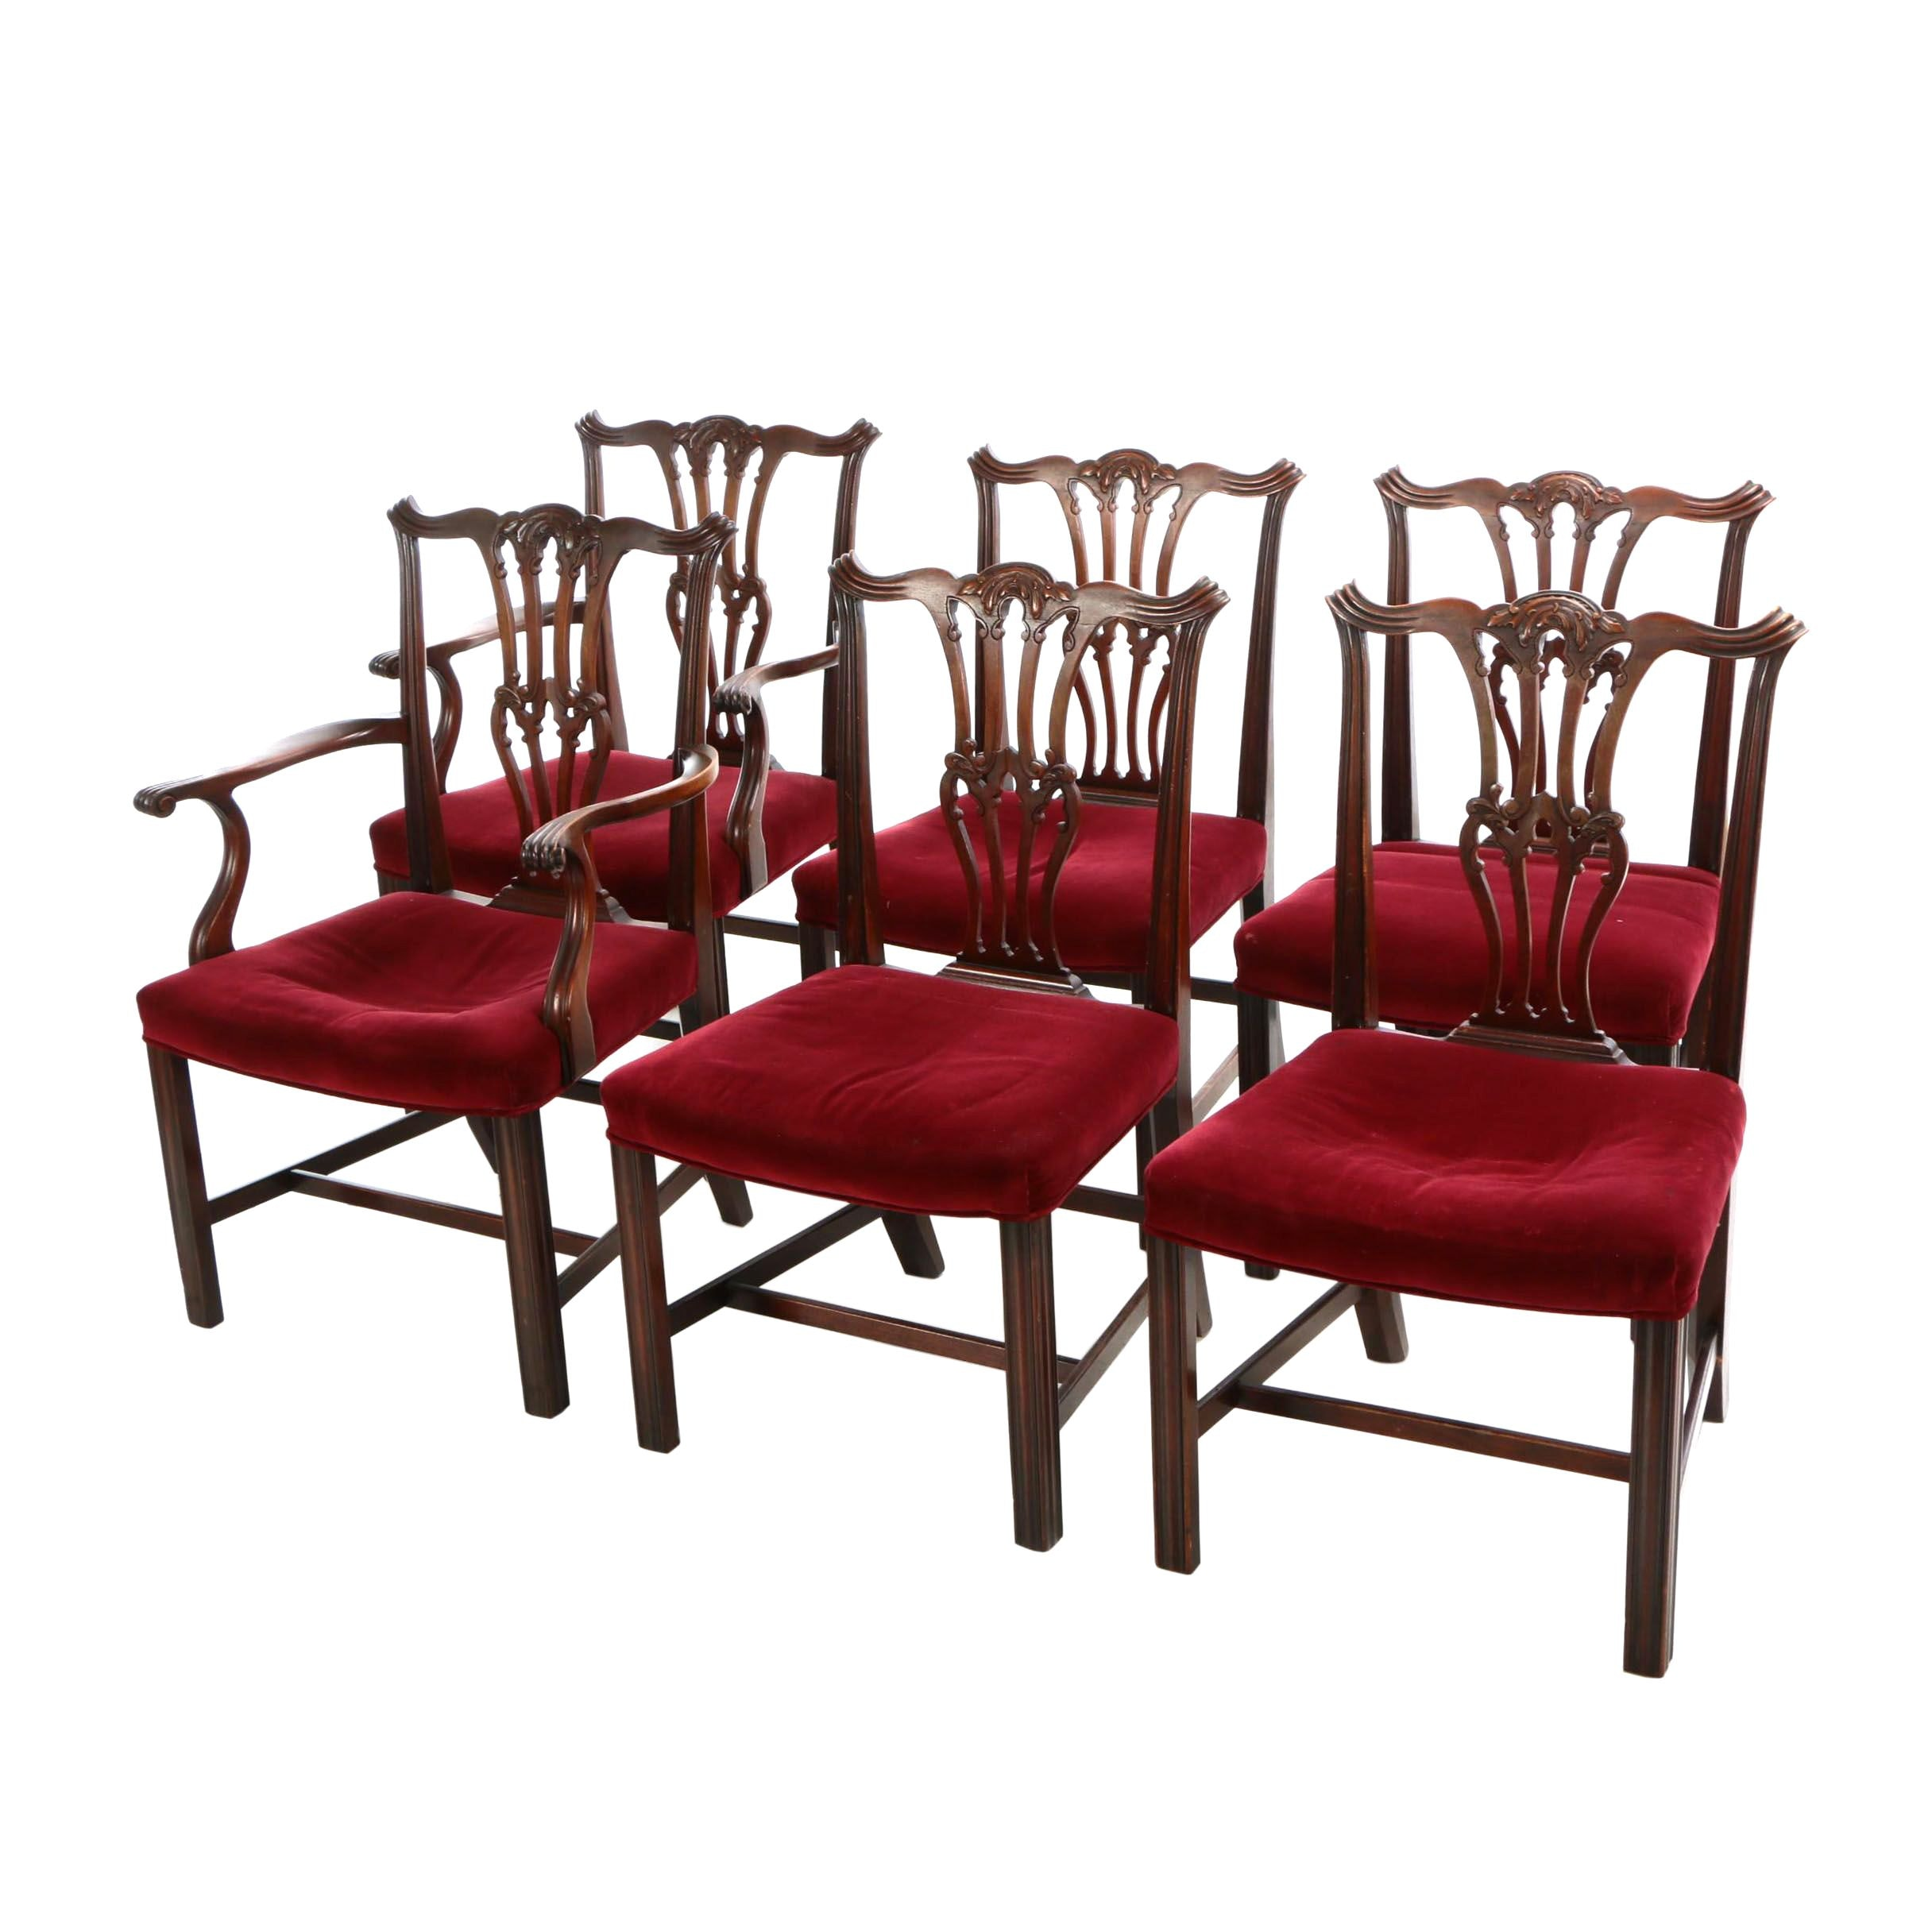 Six George III Style Carved Mahogany Dining Chairs, 20th Century